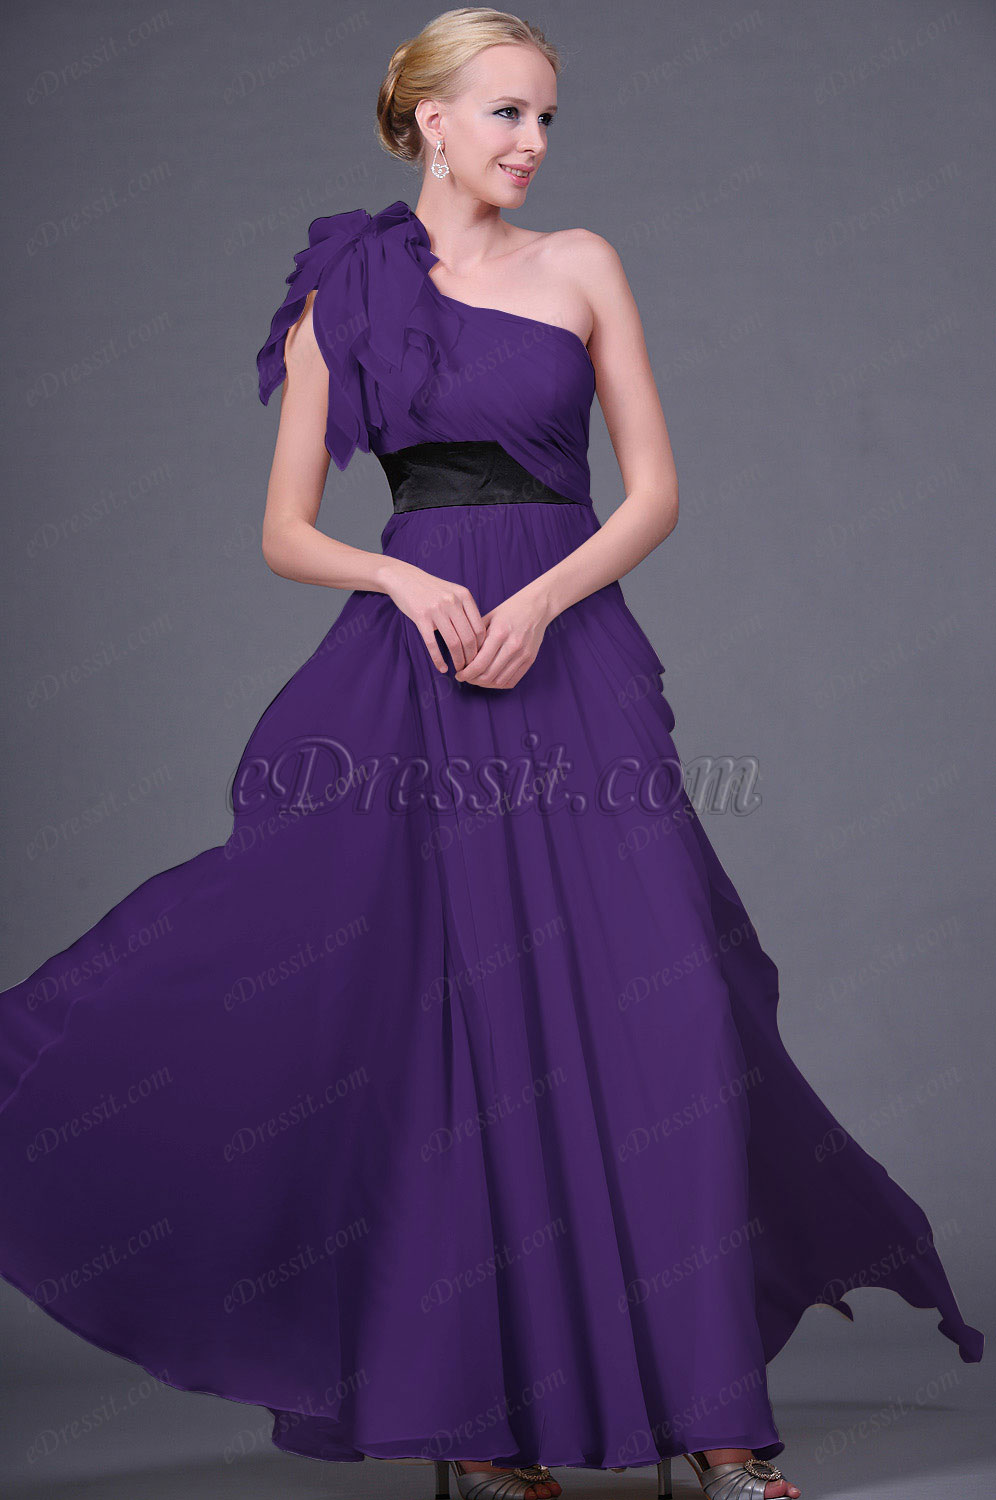 Clerance Sale ! eDressit Purple Evening Dress--Size UK10 (00111314c)